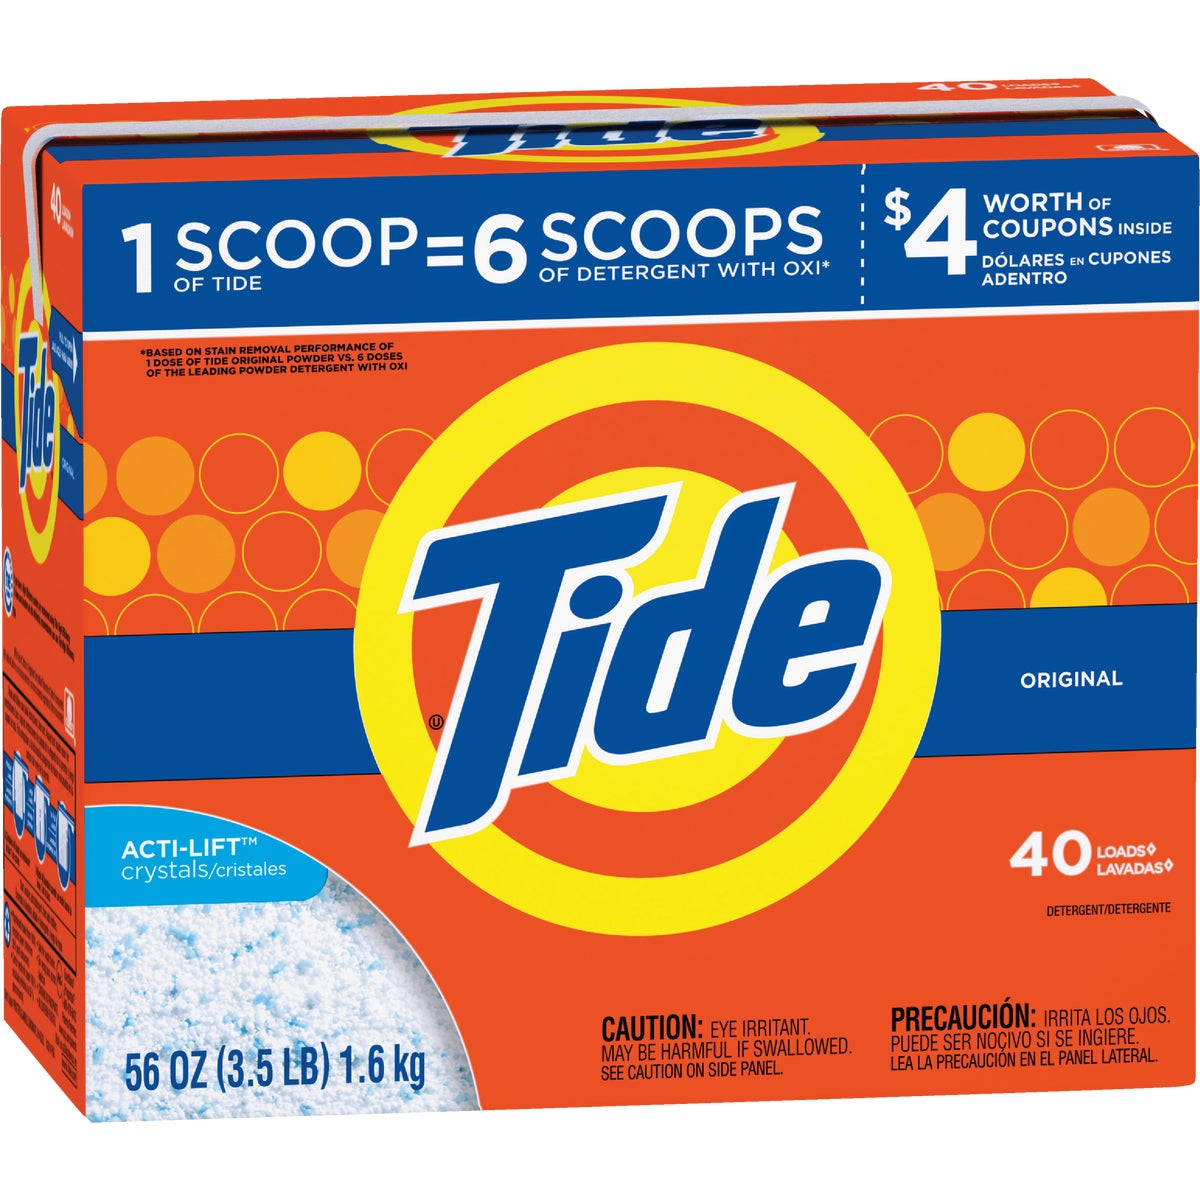 56OZ TIDE PWDR DETERGENT - 84973 by Procter & Gamble